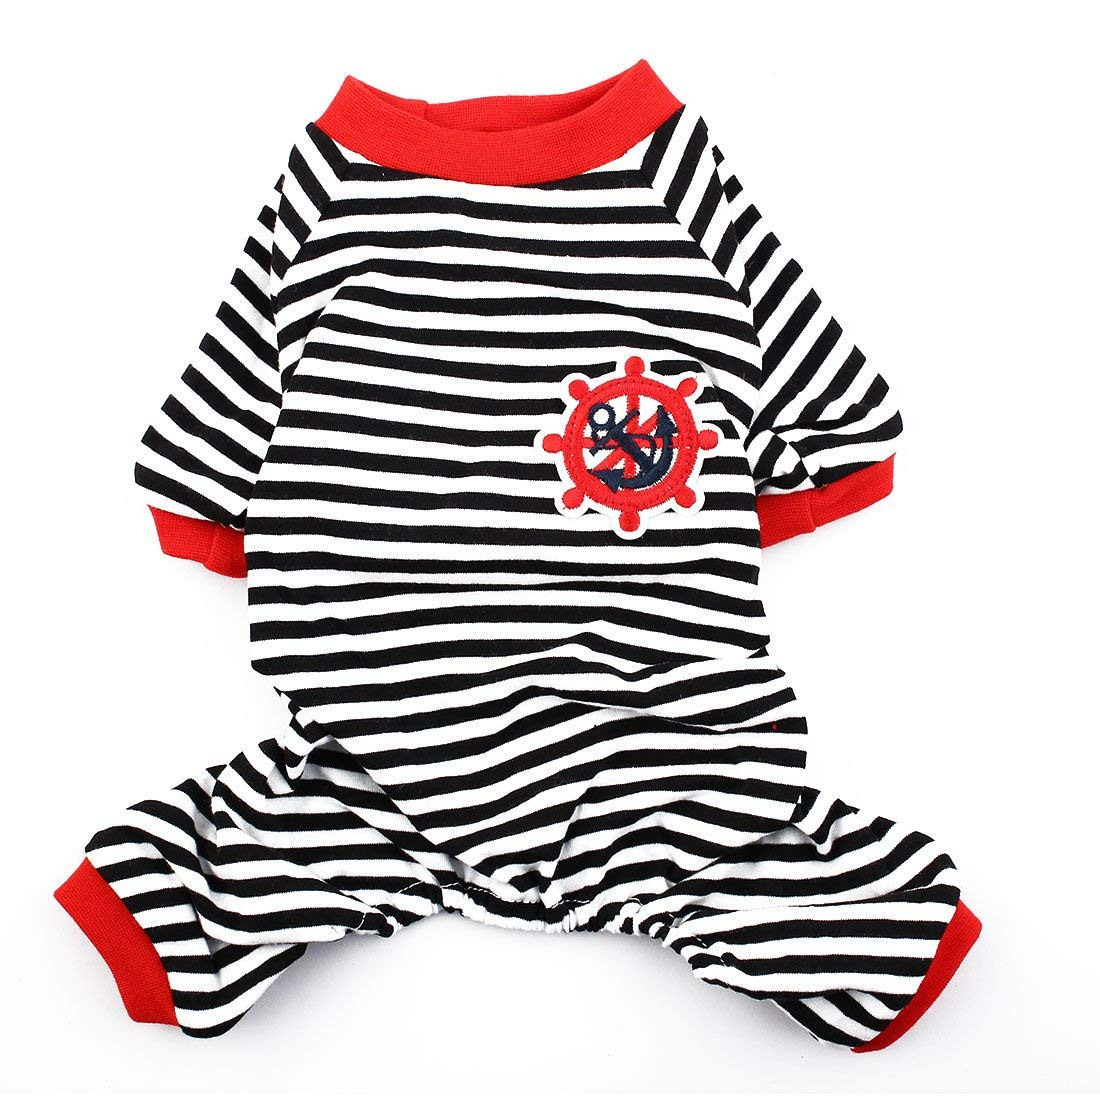 Anchor Rudder Embroidery Pattern Pet Dog Doggie Stripe Sleepwear Shirt Clothes Pajamas Apparel Size S